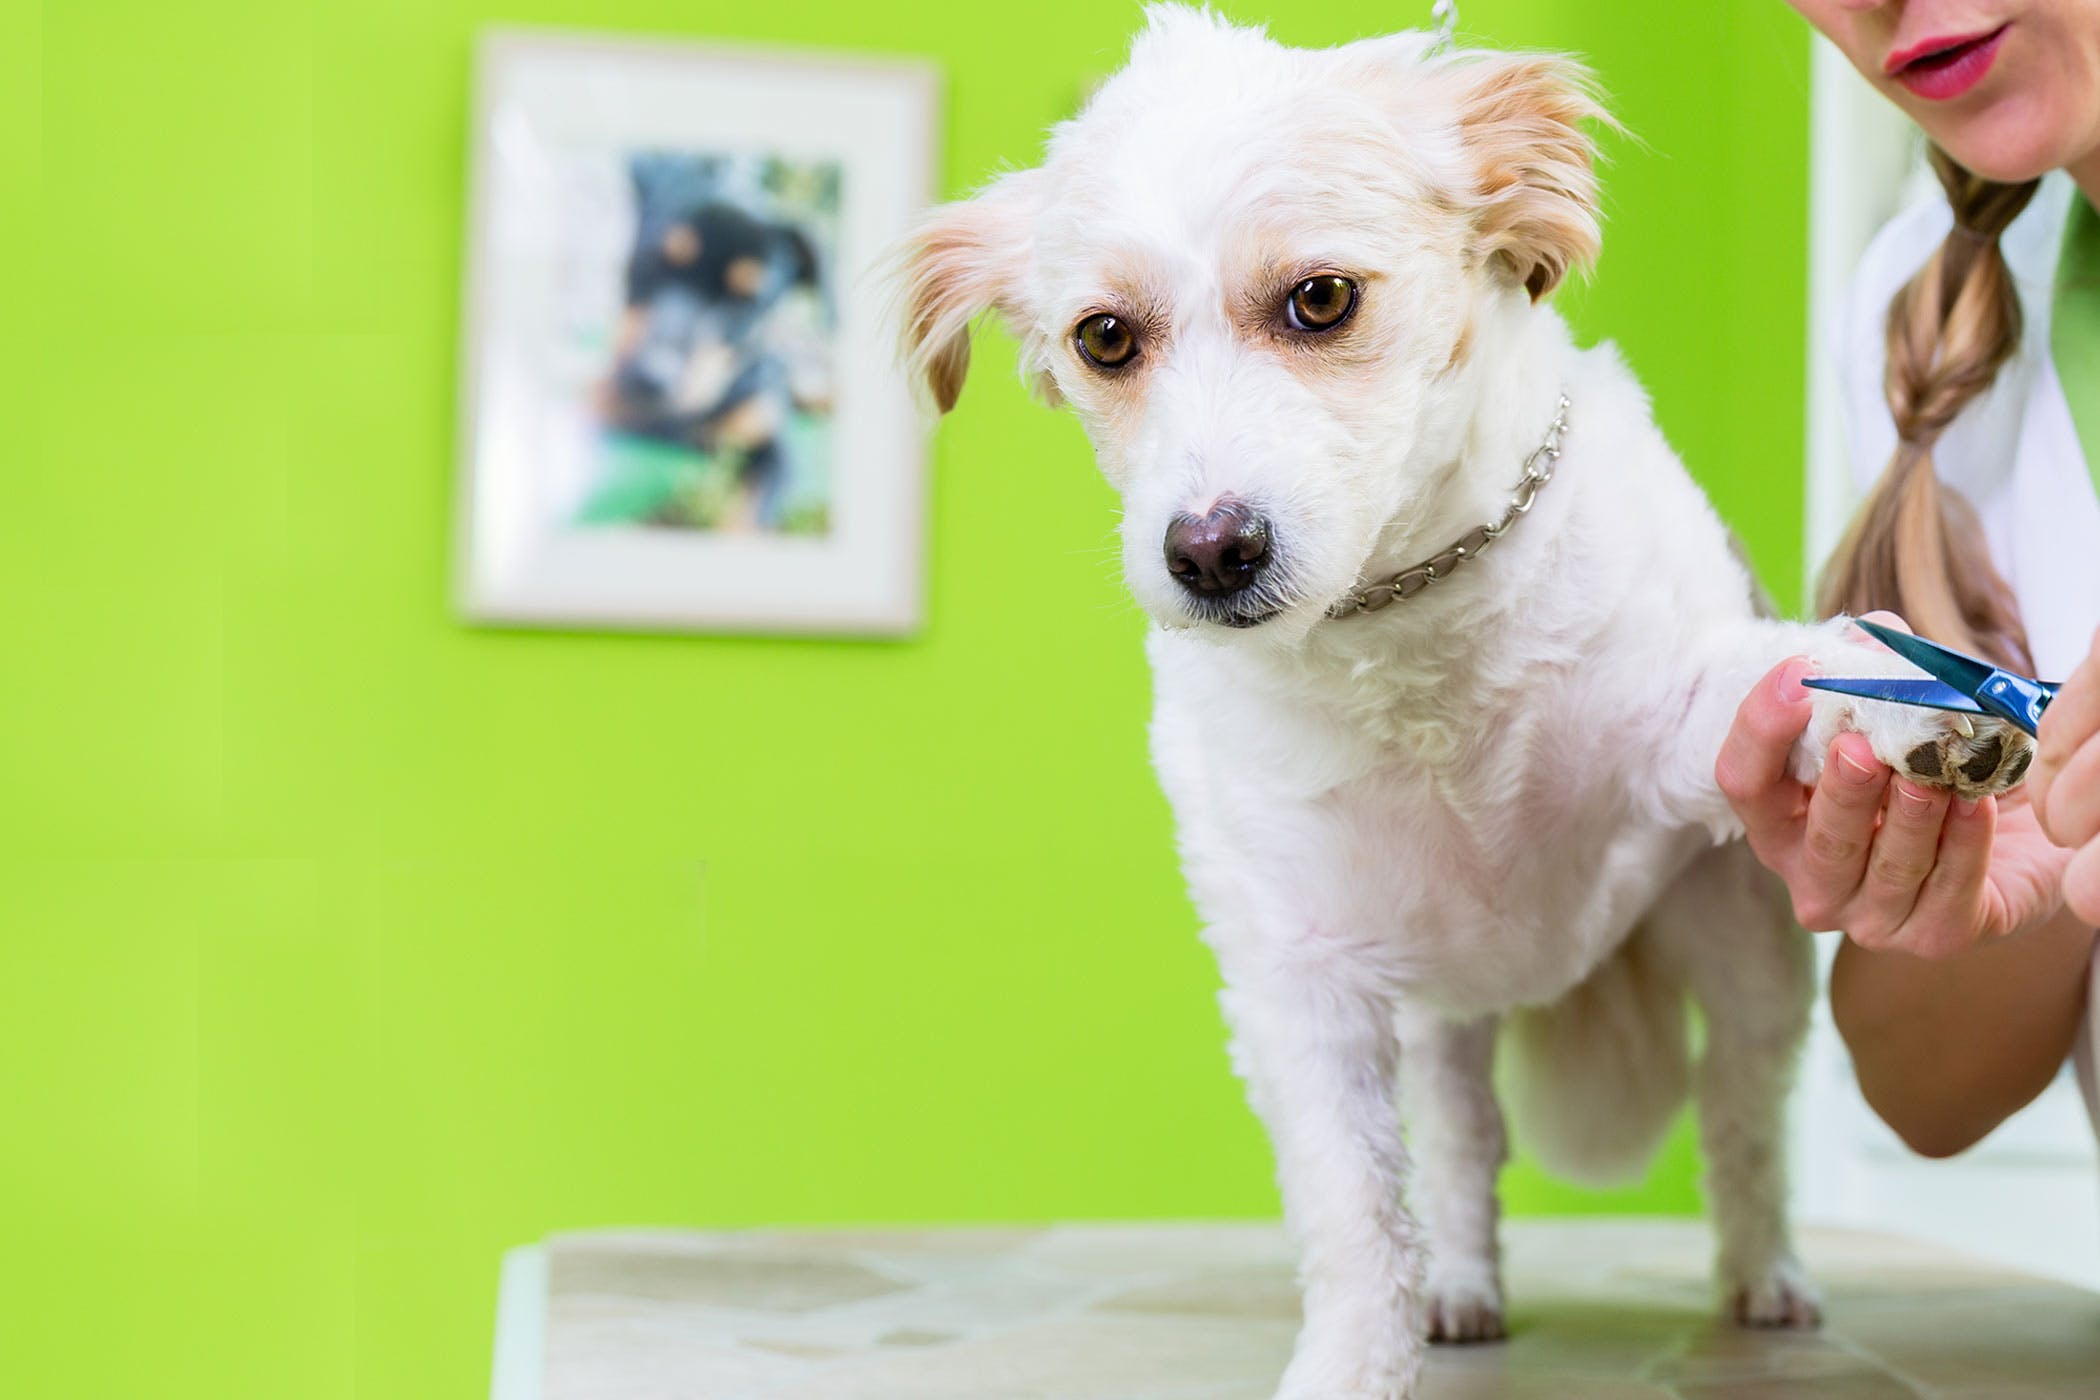 How to Train Your Dog to Stay Still While Grooming | Wag!